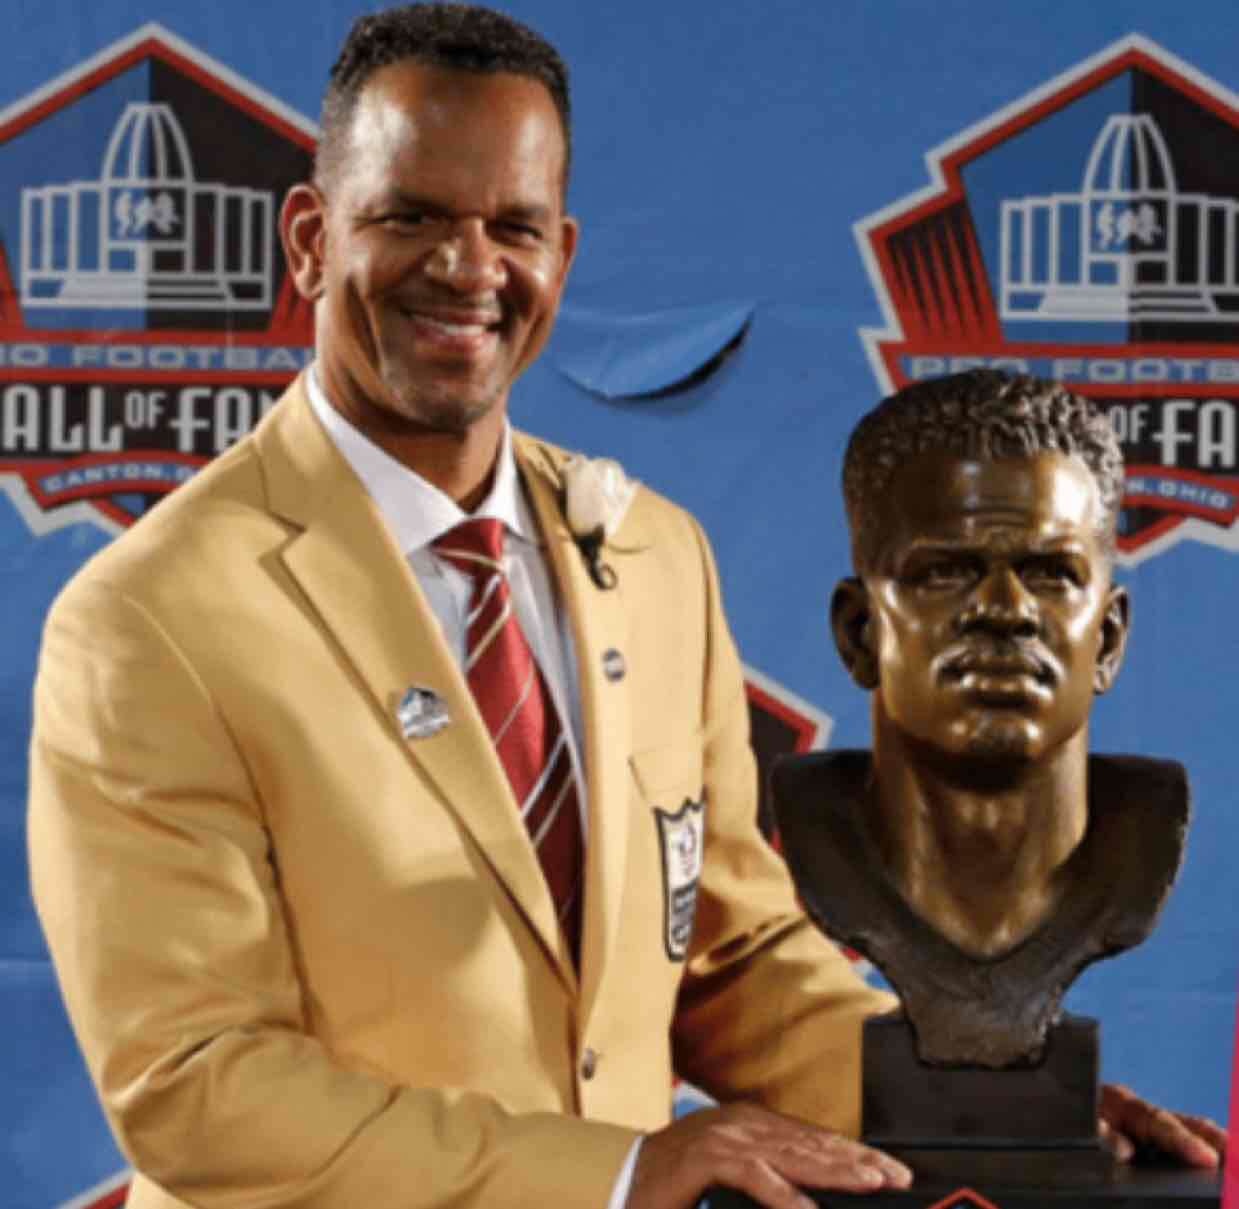 Avatar of Andre Reed